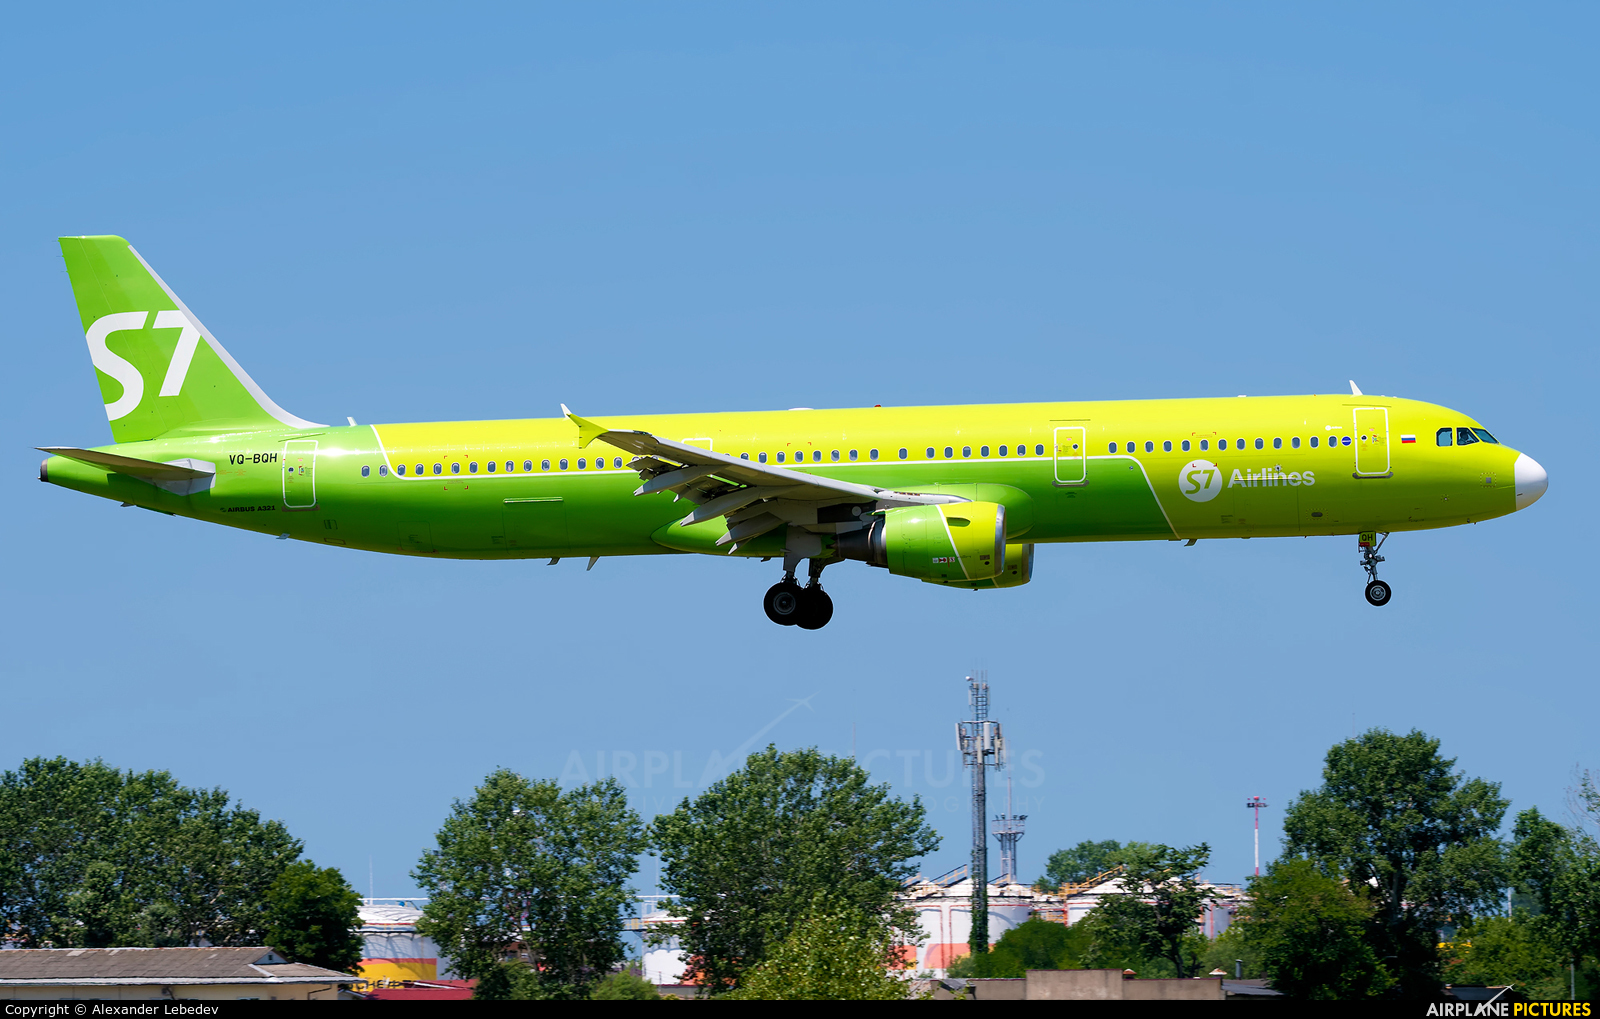 S7 Airlines VQ-BQH aircraft at Sochi Intl